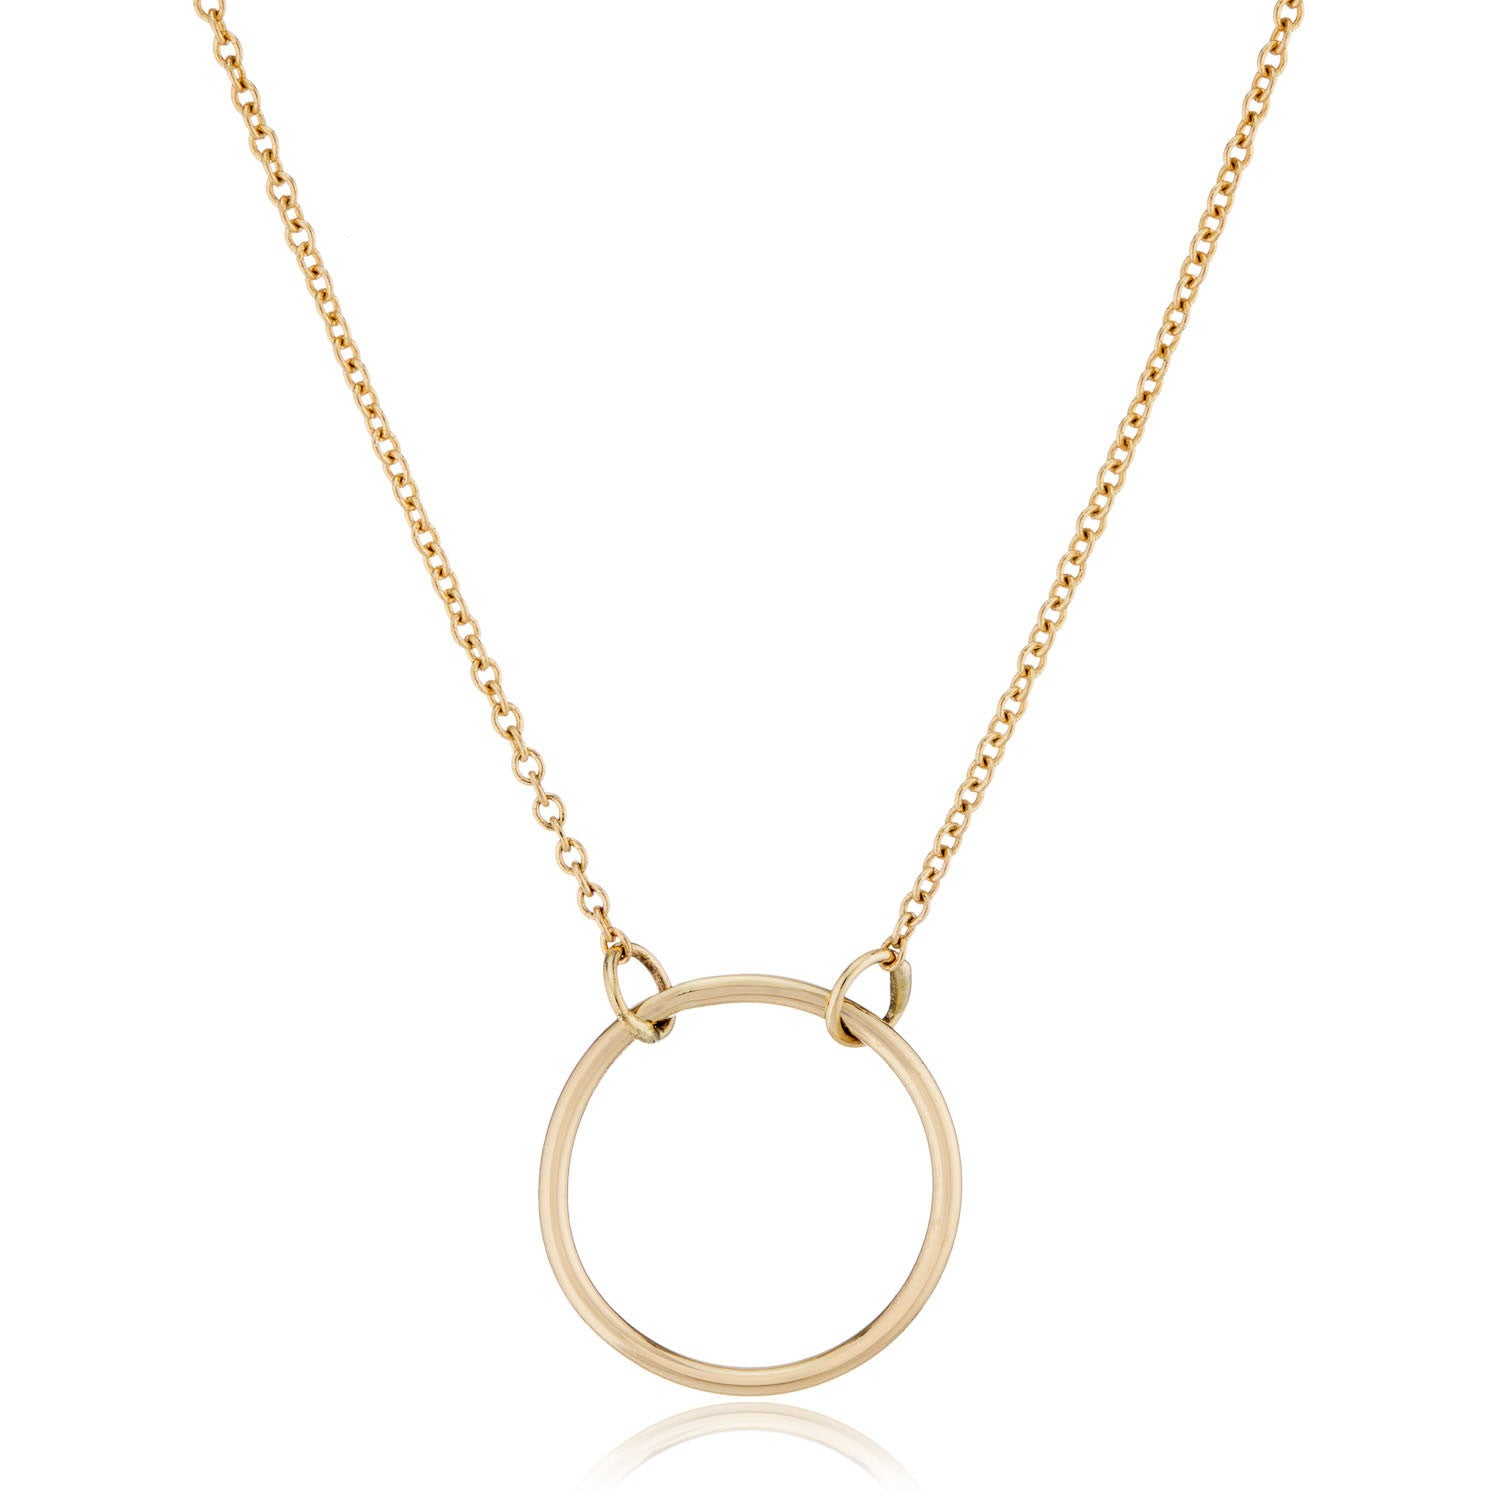 14K Yellow Gold Circle Necklace by Valerie Madison